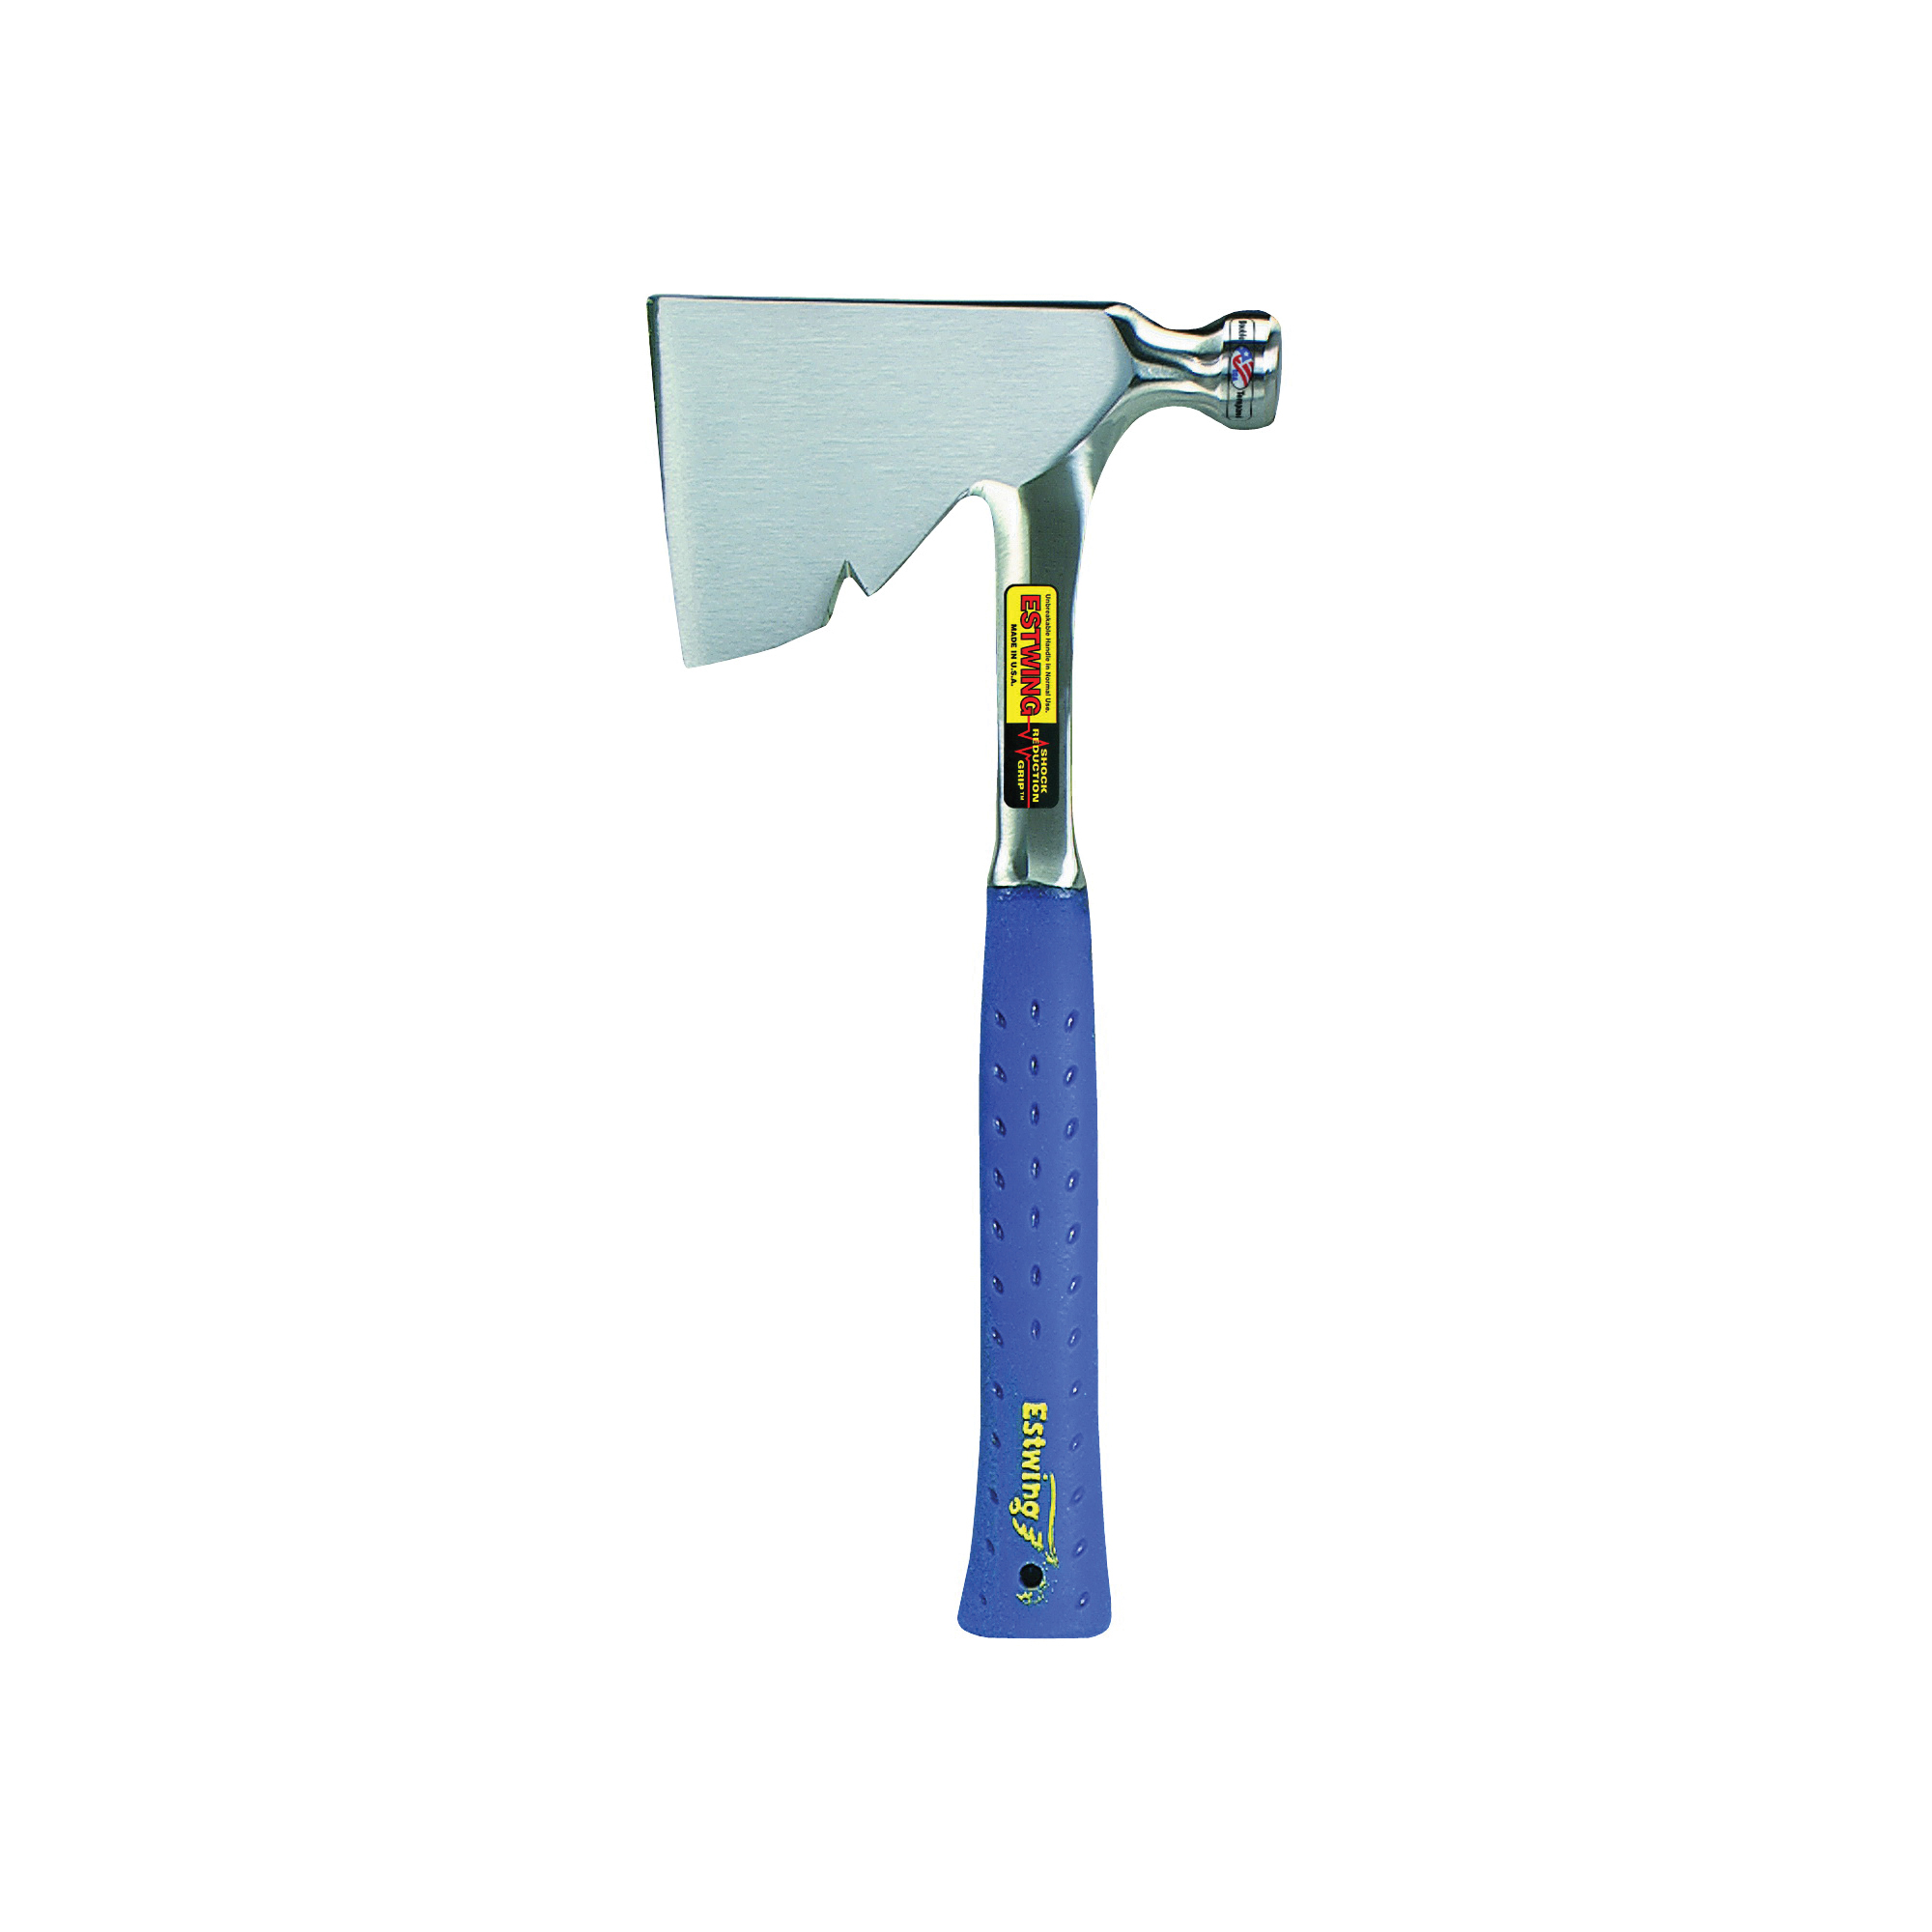 Picture of Estwing E3-2H Carpenter's Hatchet, 3-5/8 in Cutting Edge, Steel Head, Nylon/Vinyl Handle, 13 in OAL